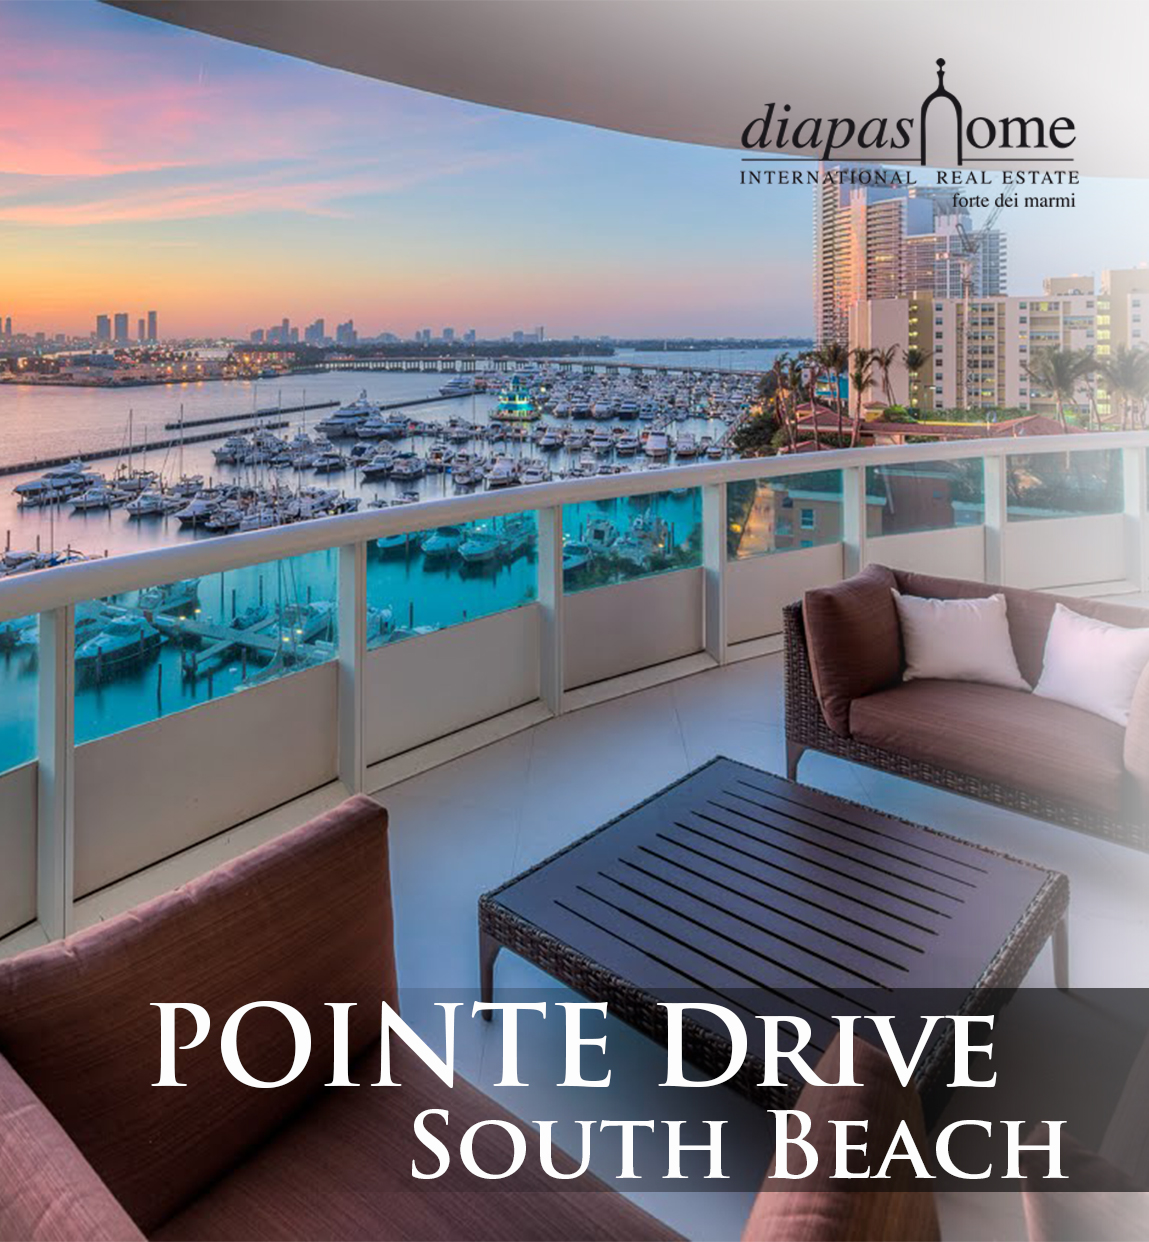 pointe drive